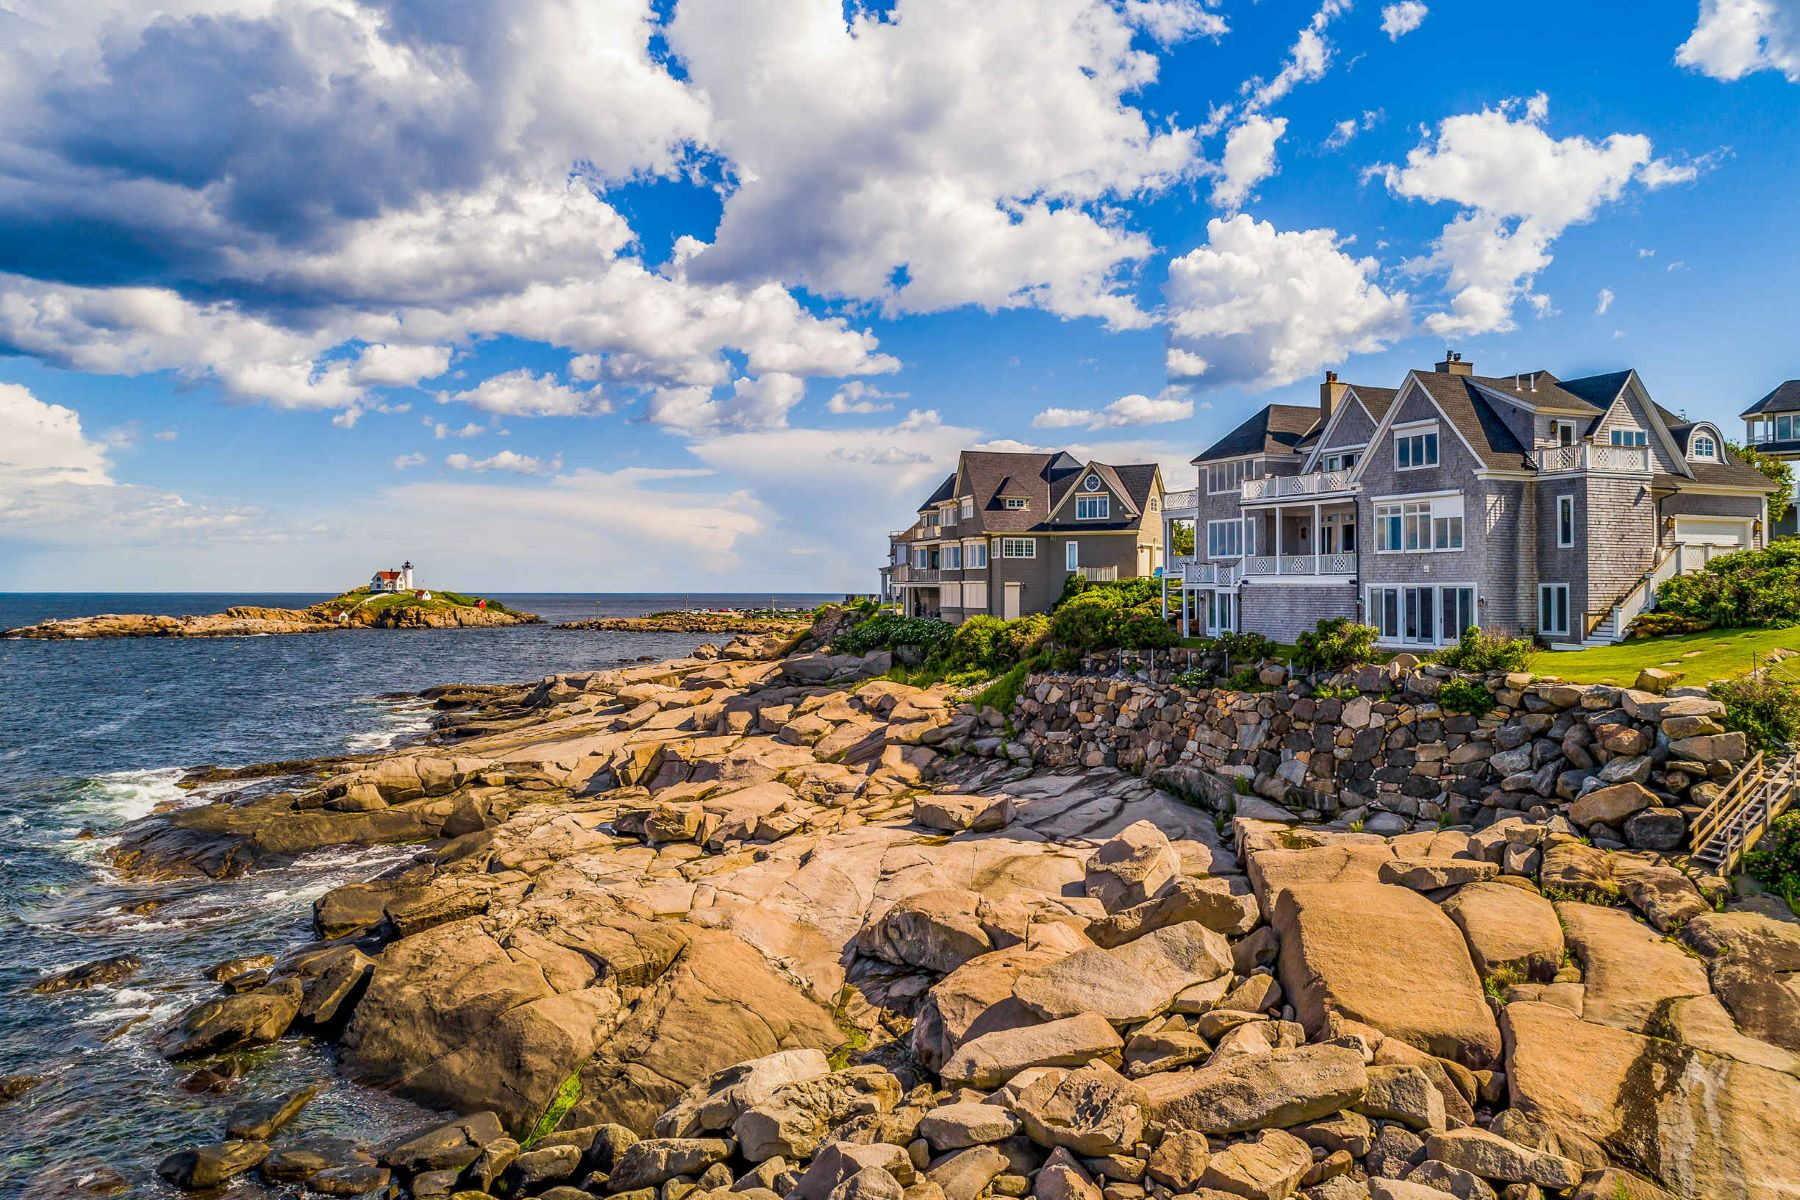 Single Family Homes for Sale at Grand Oceanfront Home at Lighthouse Watch 4 Lighthouse Watch, York, Maine 03909 United States